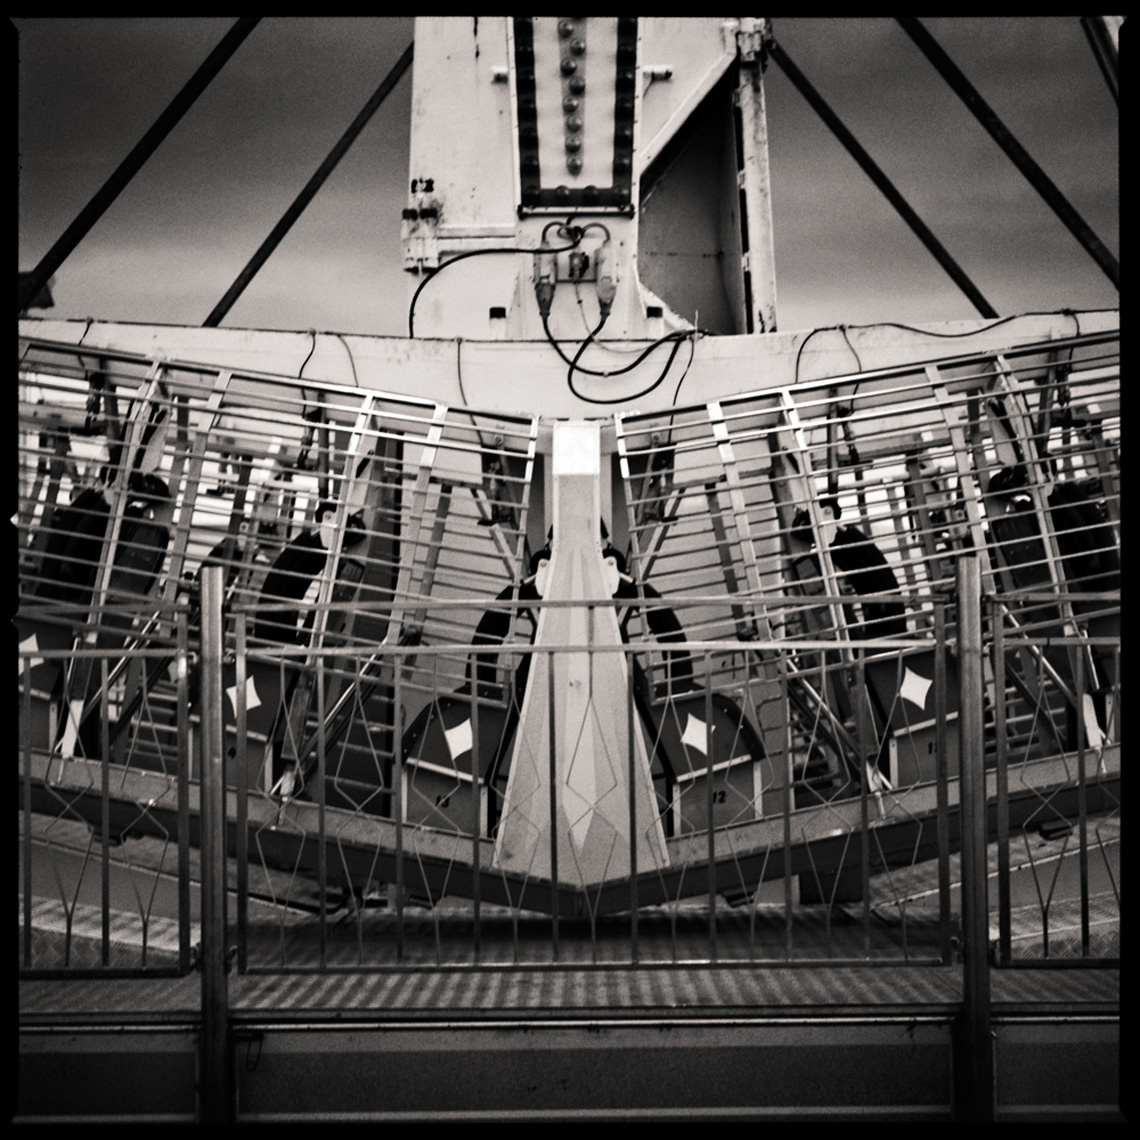 Sean Perry Photographs • The Time Machine, from the series Fairgrounds